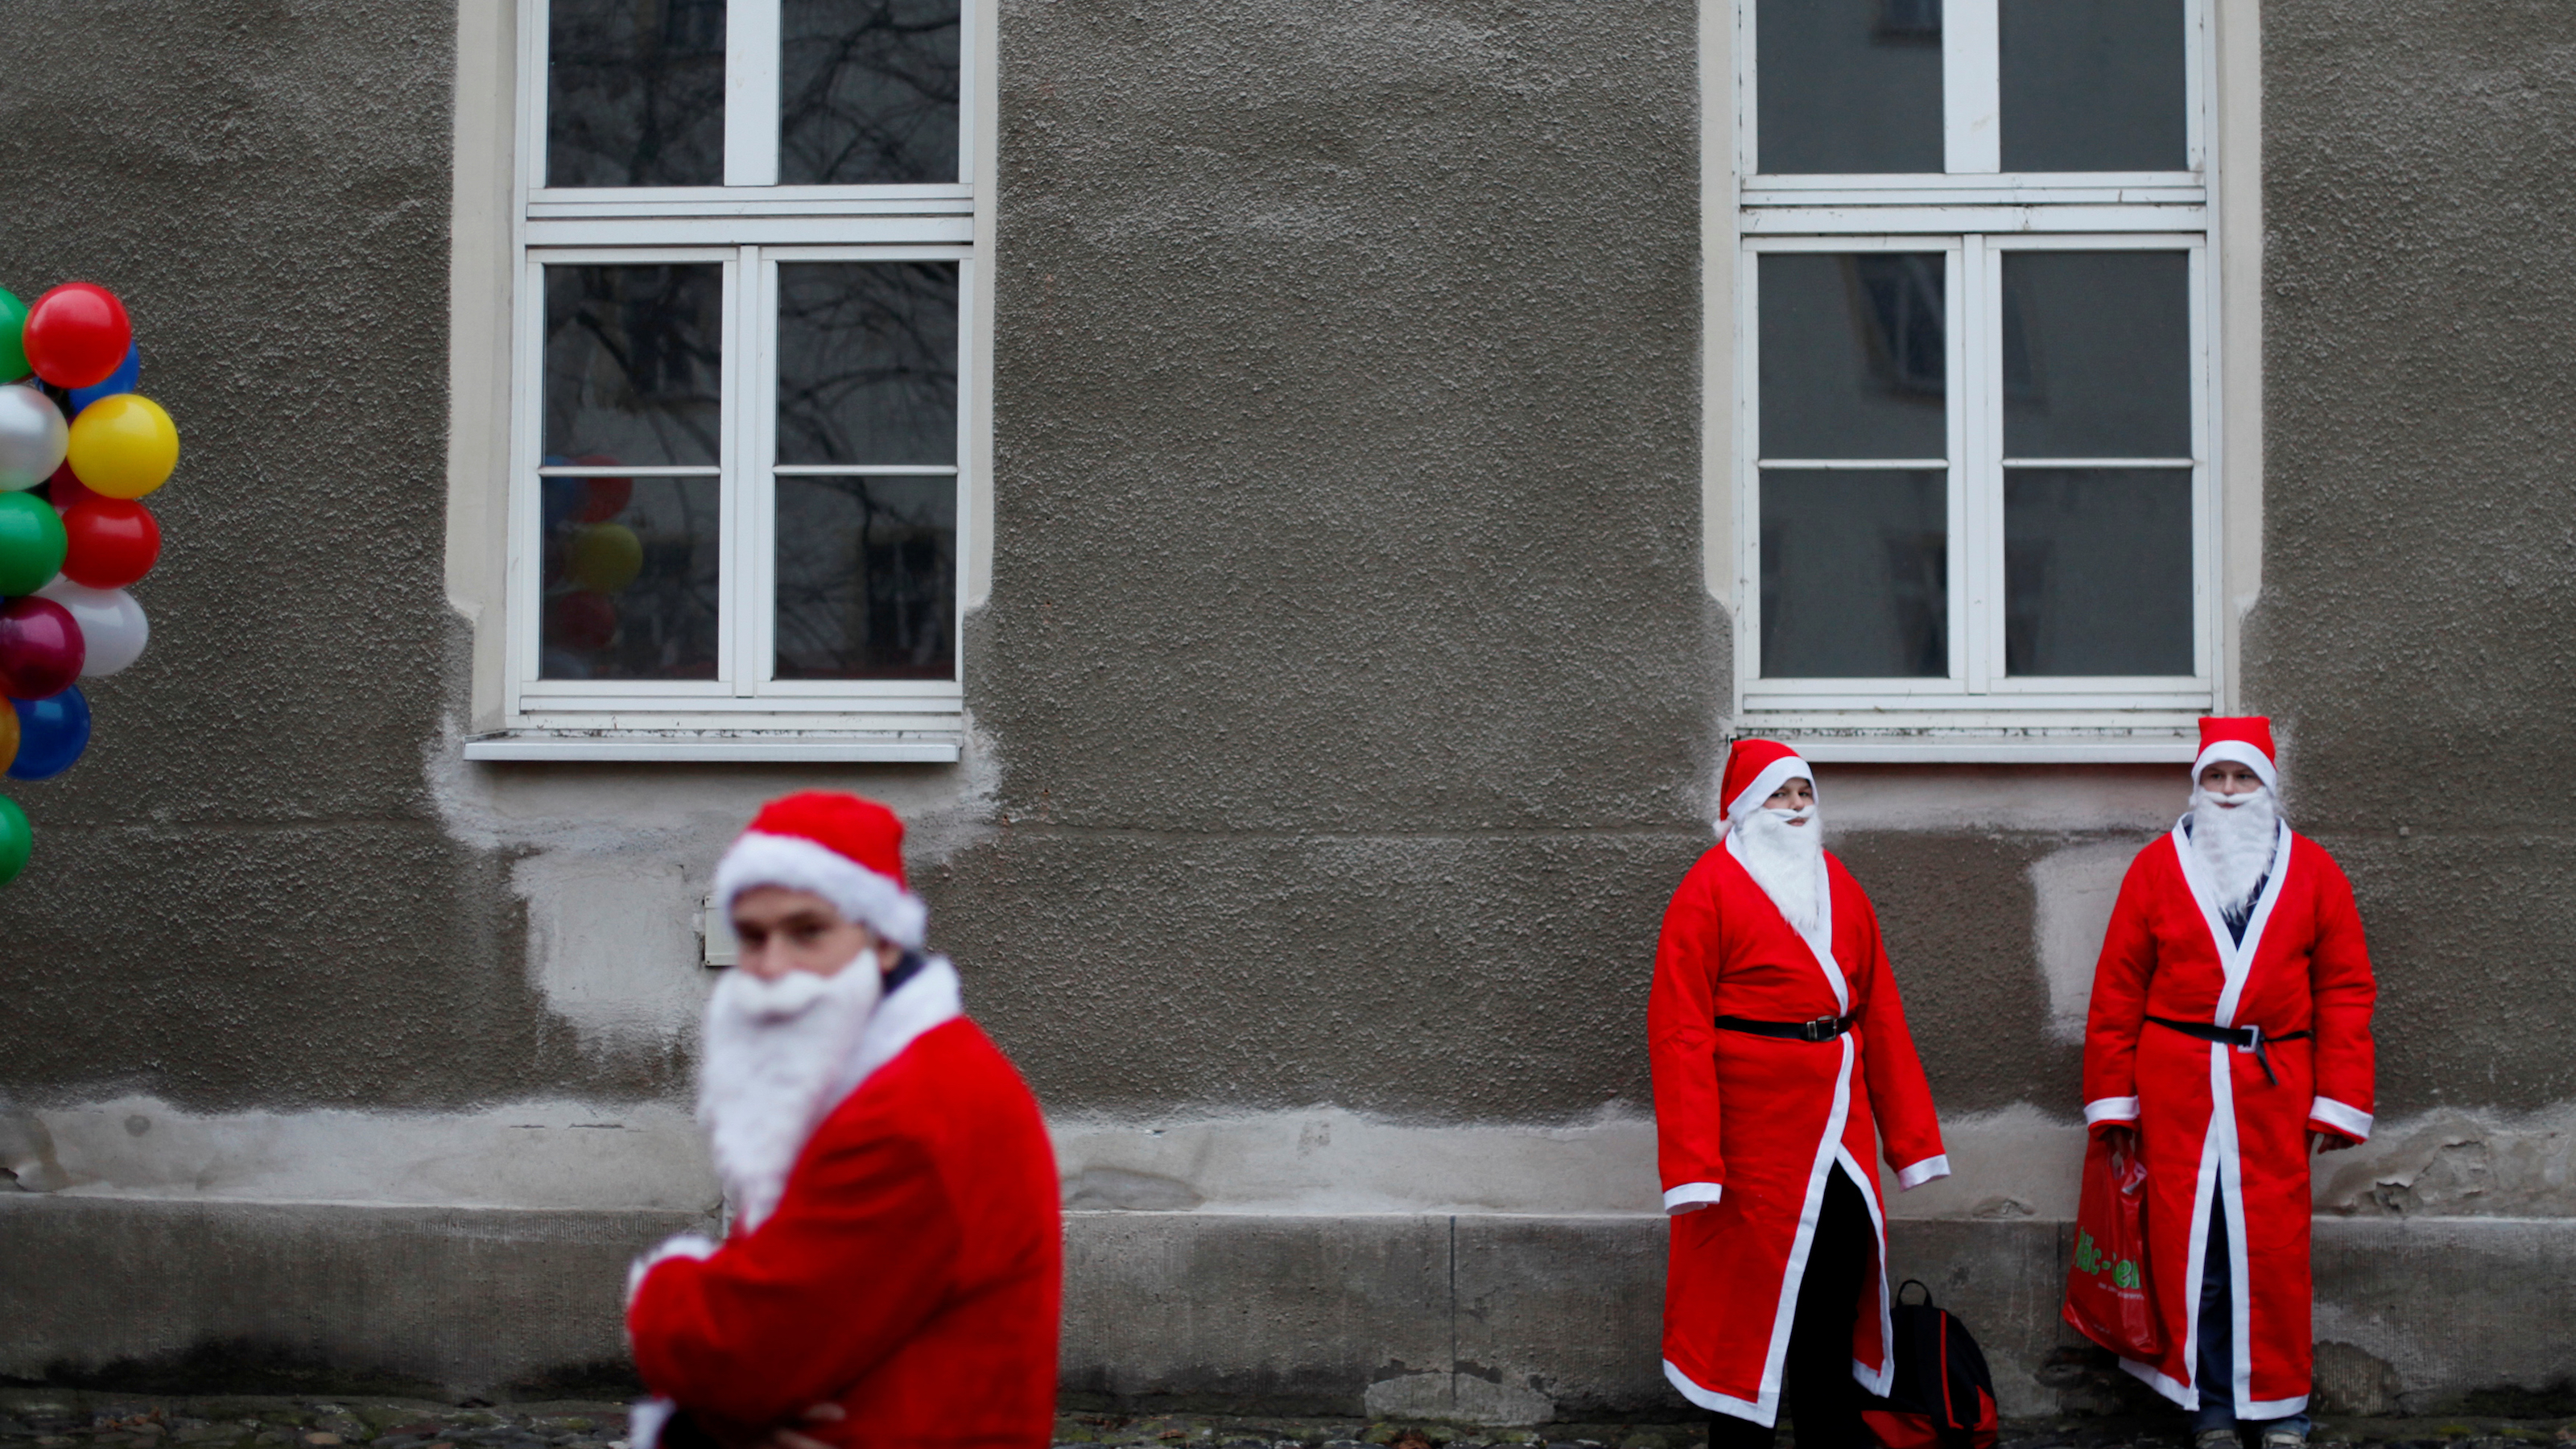 Young men dressed in Santa Claus costumes attend the annual Santa Claus parade in Brandenburg, southwest of Berlin December 6, 2008. Some 106 decorated vehicles and more than 2,000 people participated in the parade on Saturday. REUTERS/Johannes Eisele (GERMANY) - BM2E4C61GC101